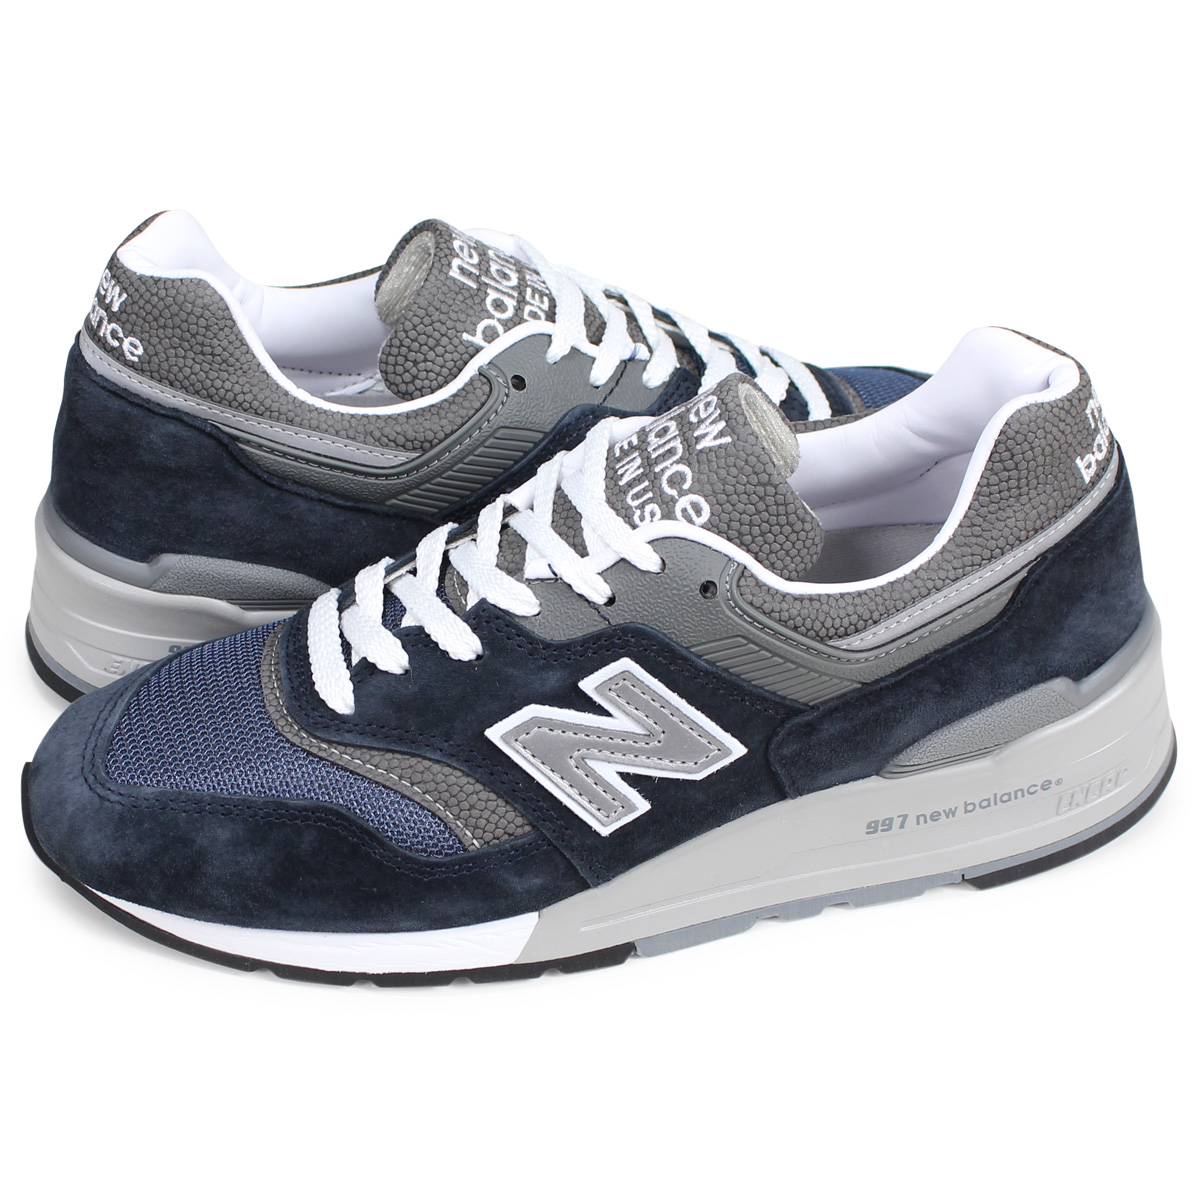 6faa964bc8c6d new balance M997NV New Balance 997 sneakers men gap Dis D Wise MADE IN USA  navy ...